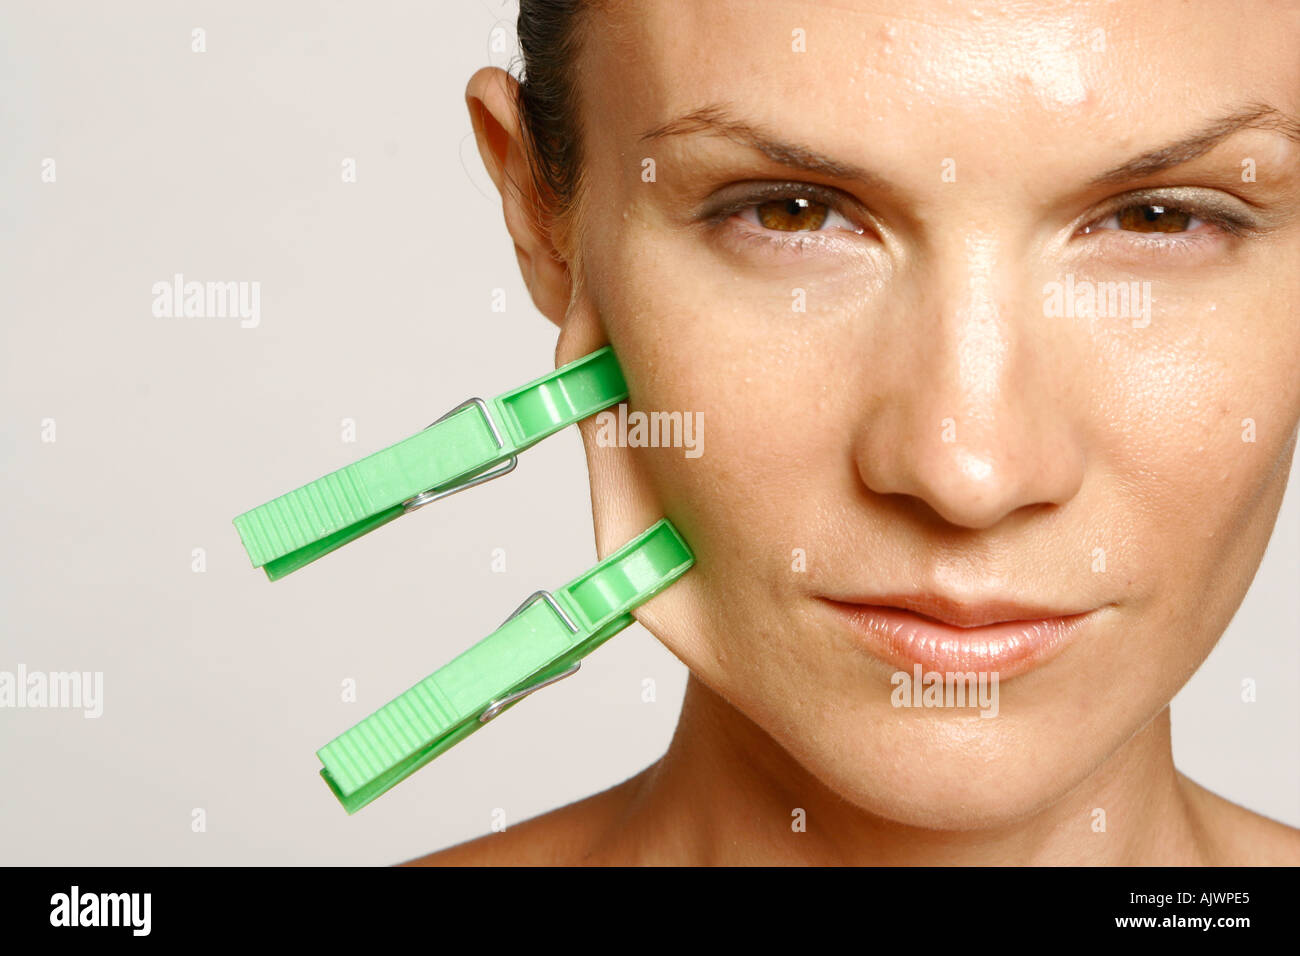 beauty head shot of a woman with two green pegs - Stock Image